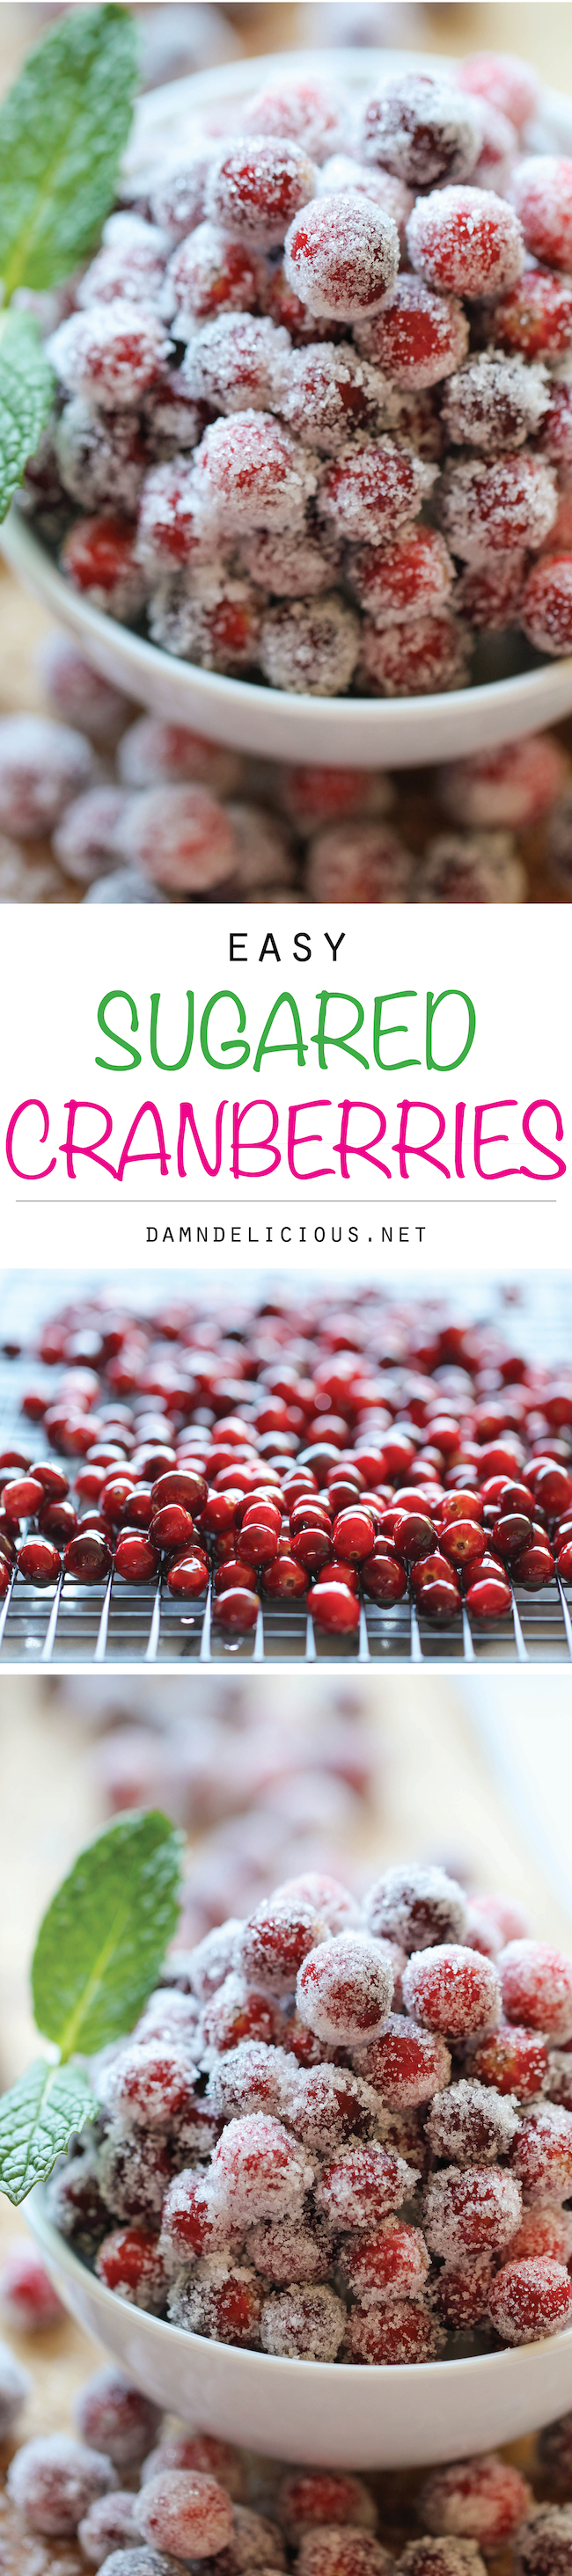 Sugared Cranberries - Incredibly simple and easy 2-ingredient sparkling cranberries. Perfect for holiday snacking or dressing up desserts!